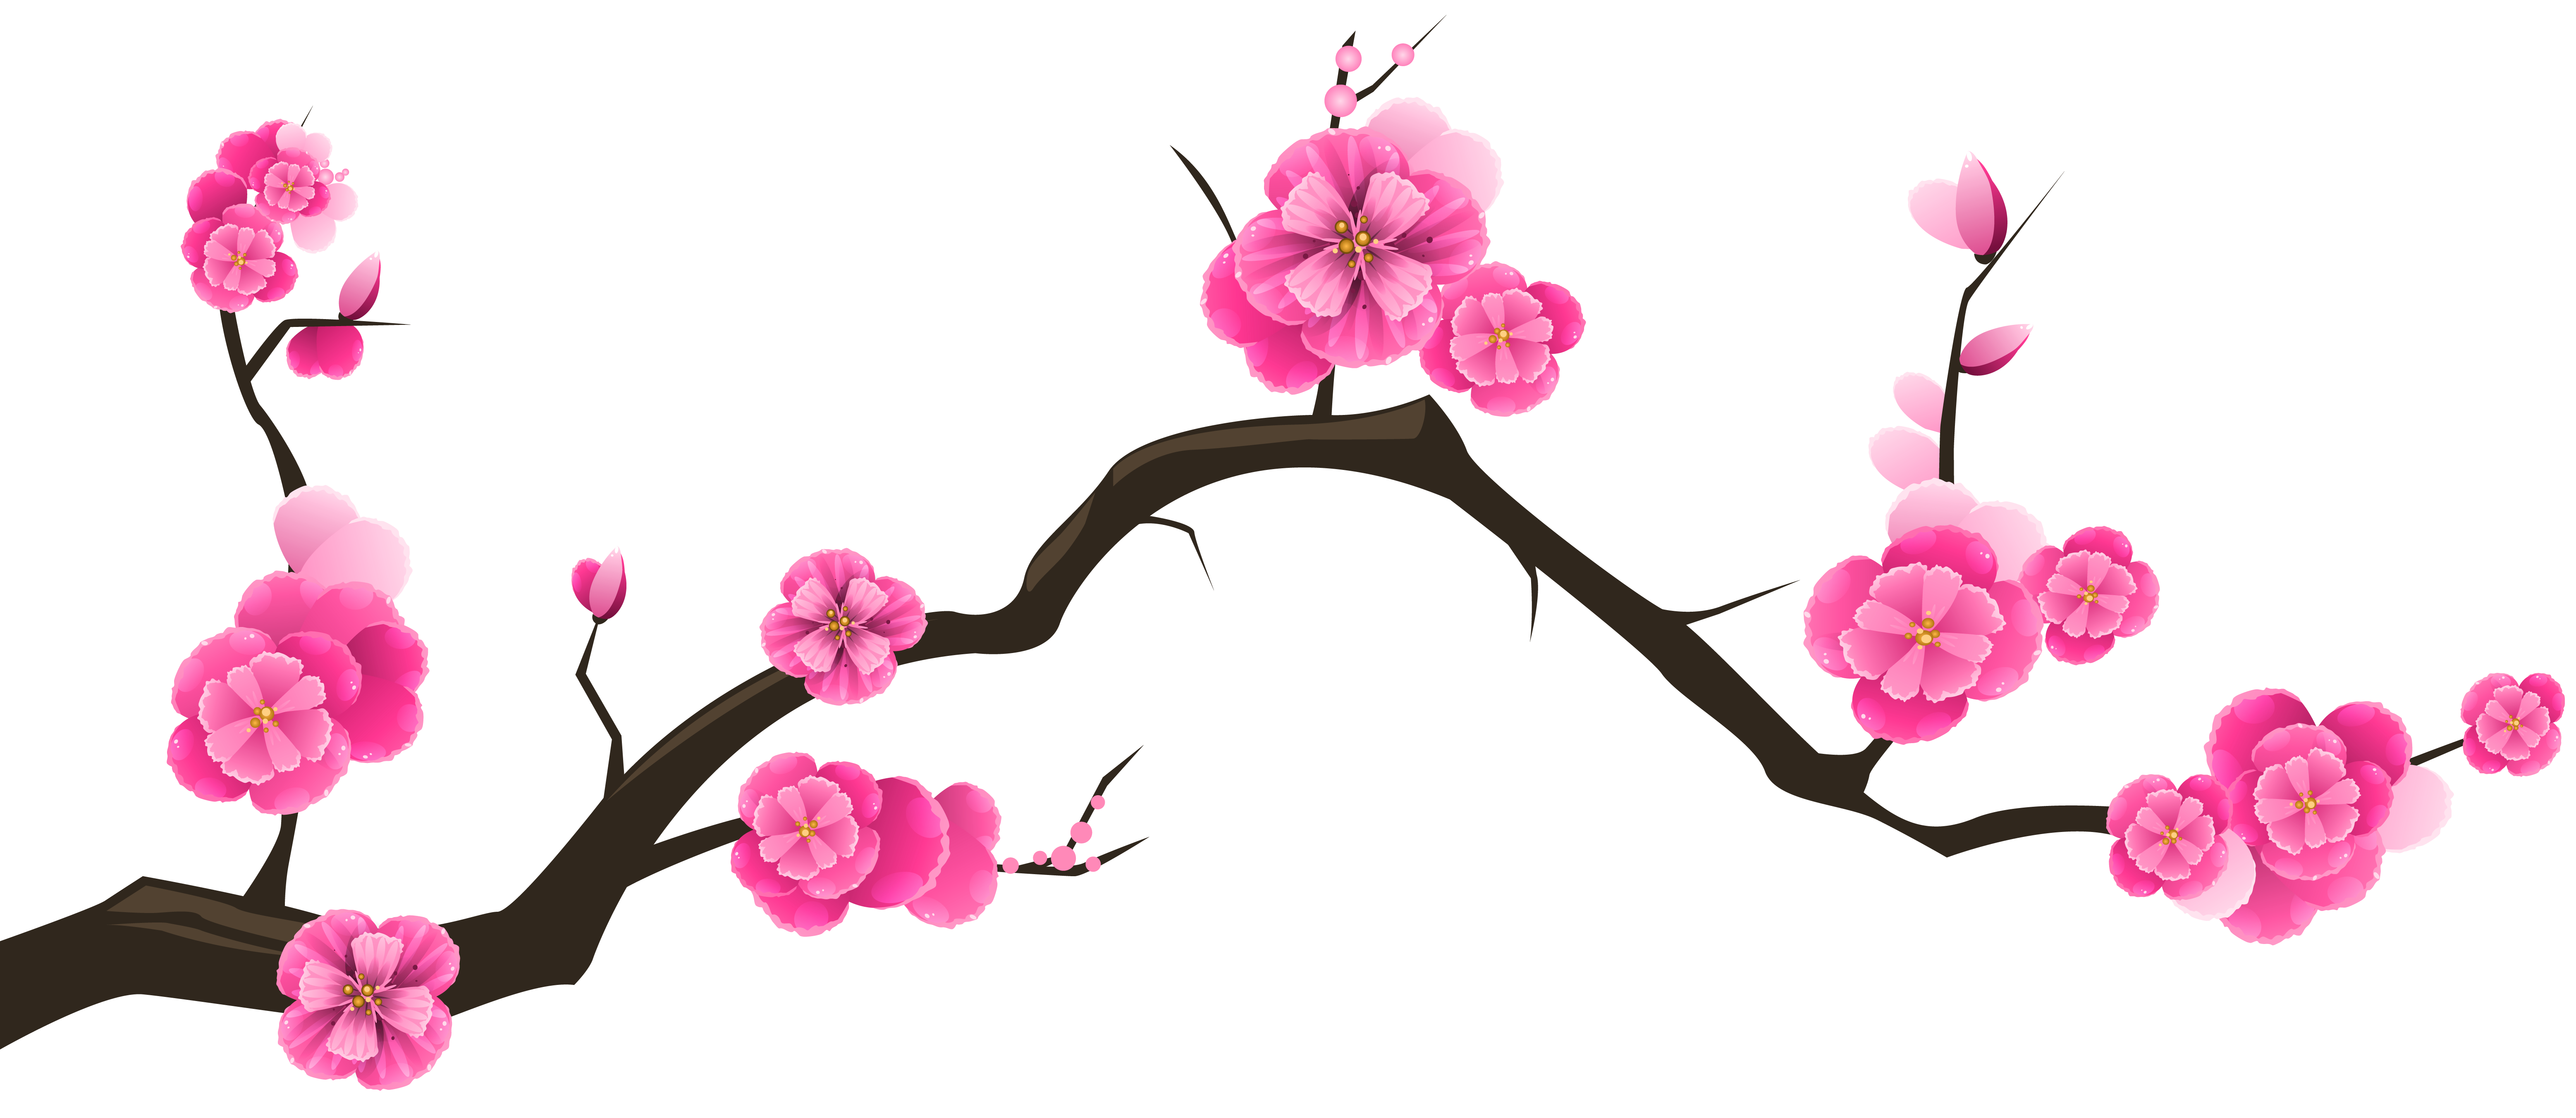 Sakura Branch Transparent Clip Art Image Gallery Yopriceville High Quality Images And Transparent Png Free Clipart Clip Art Free Clip Art Branch Drawing